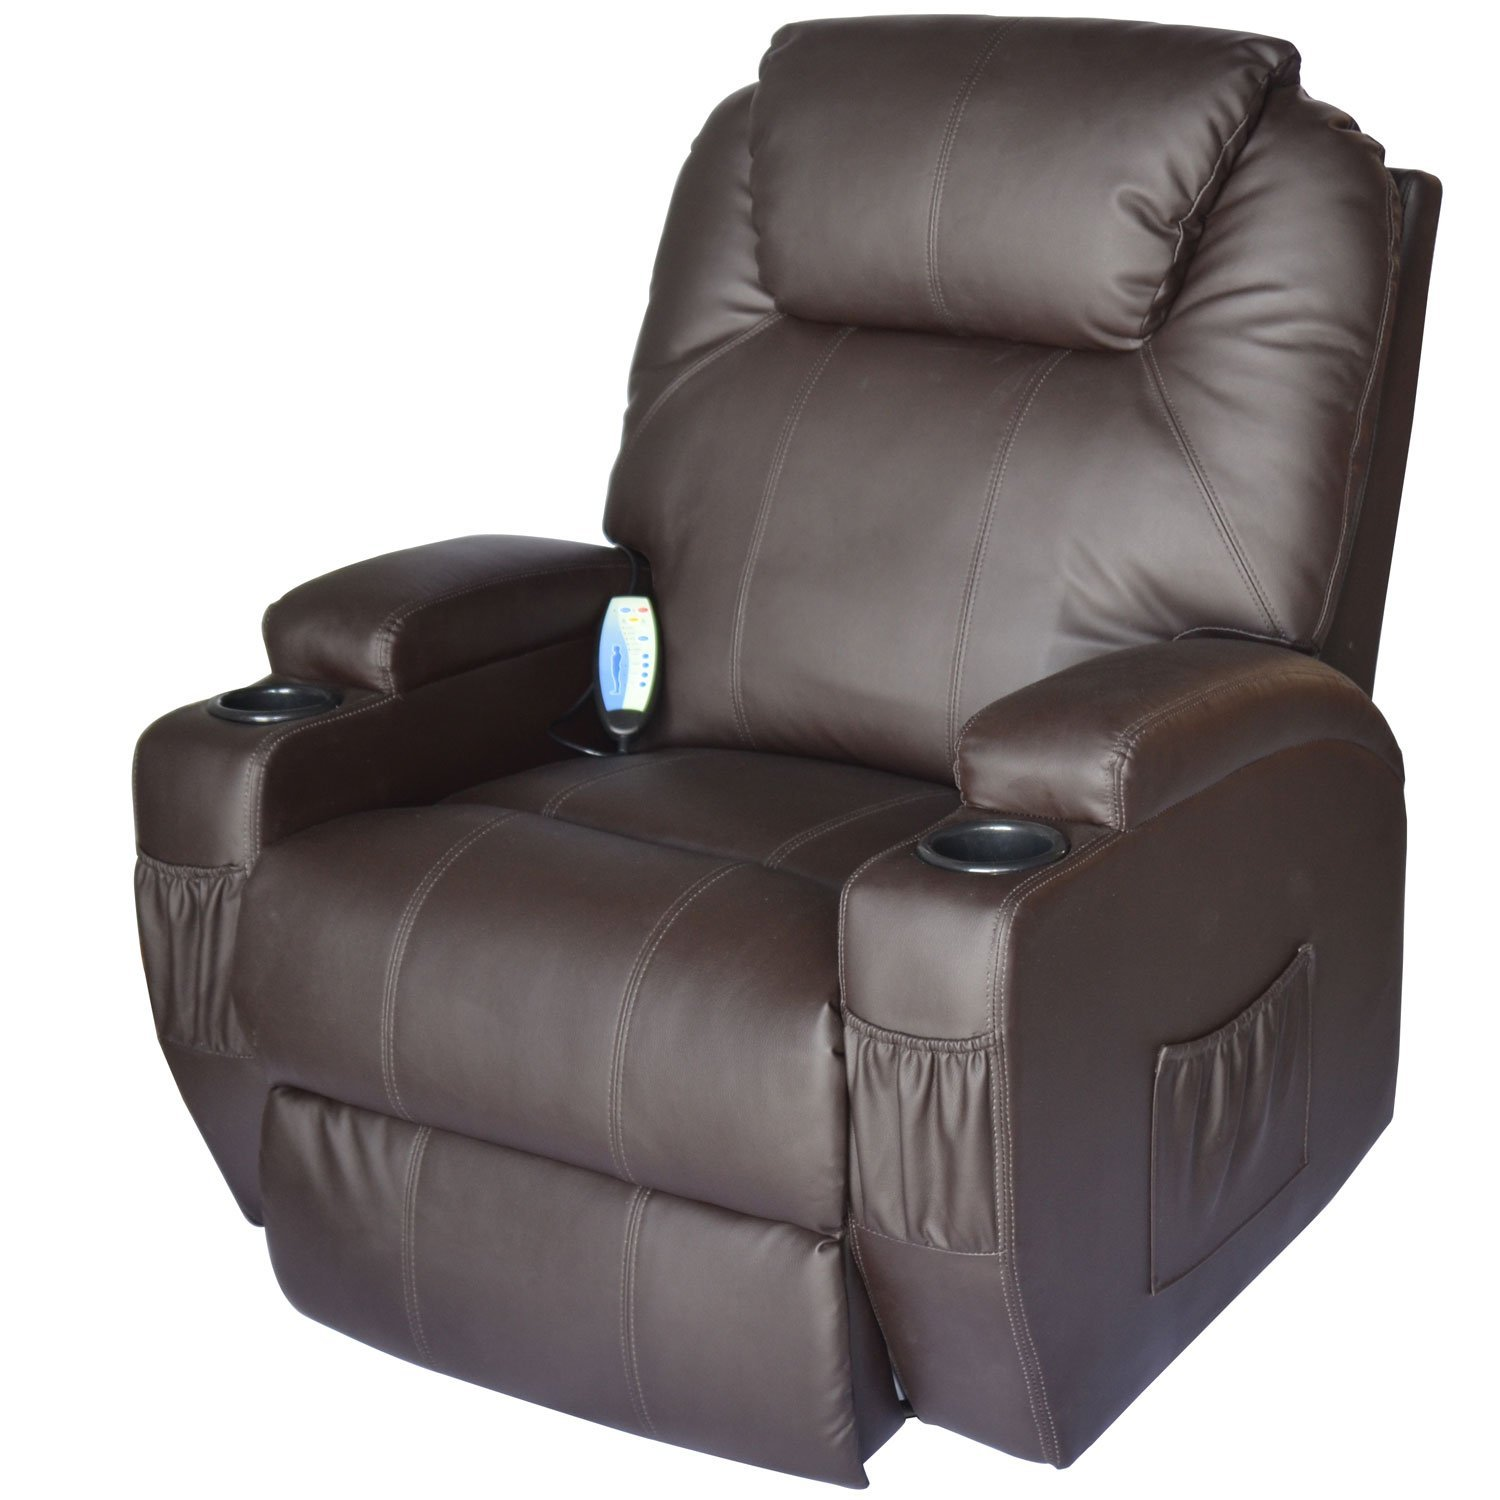 Best Massaging Recliners For Home Best Recliners